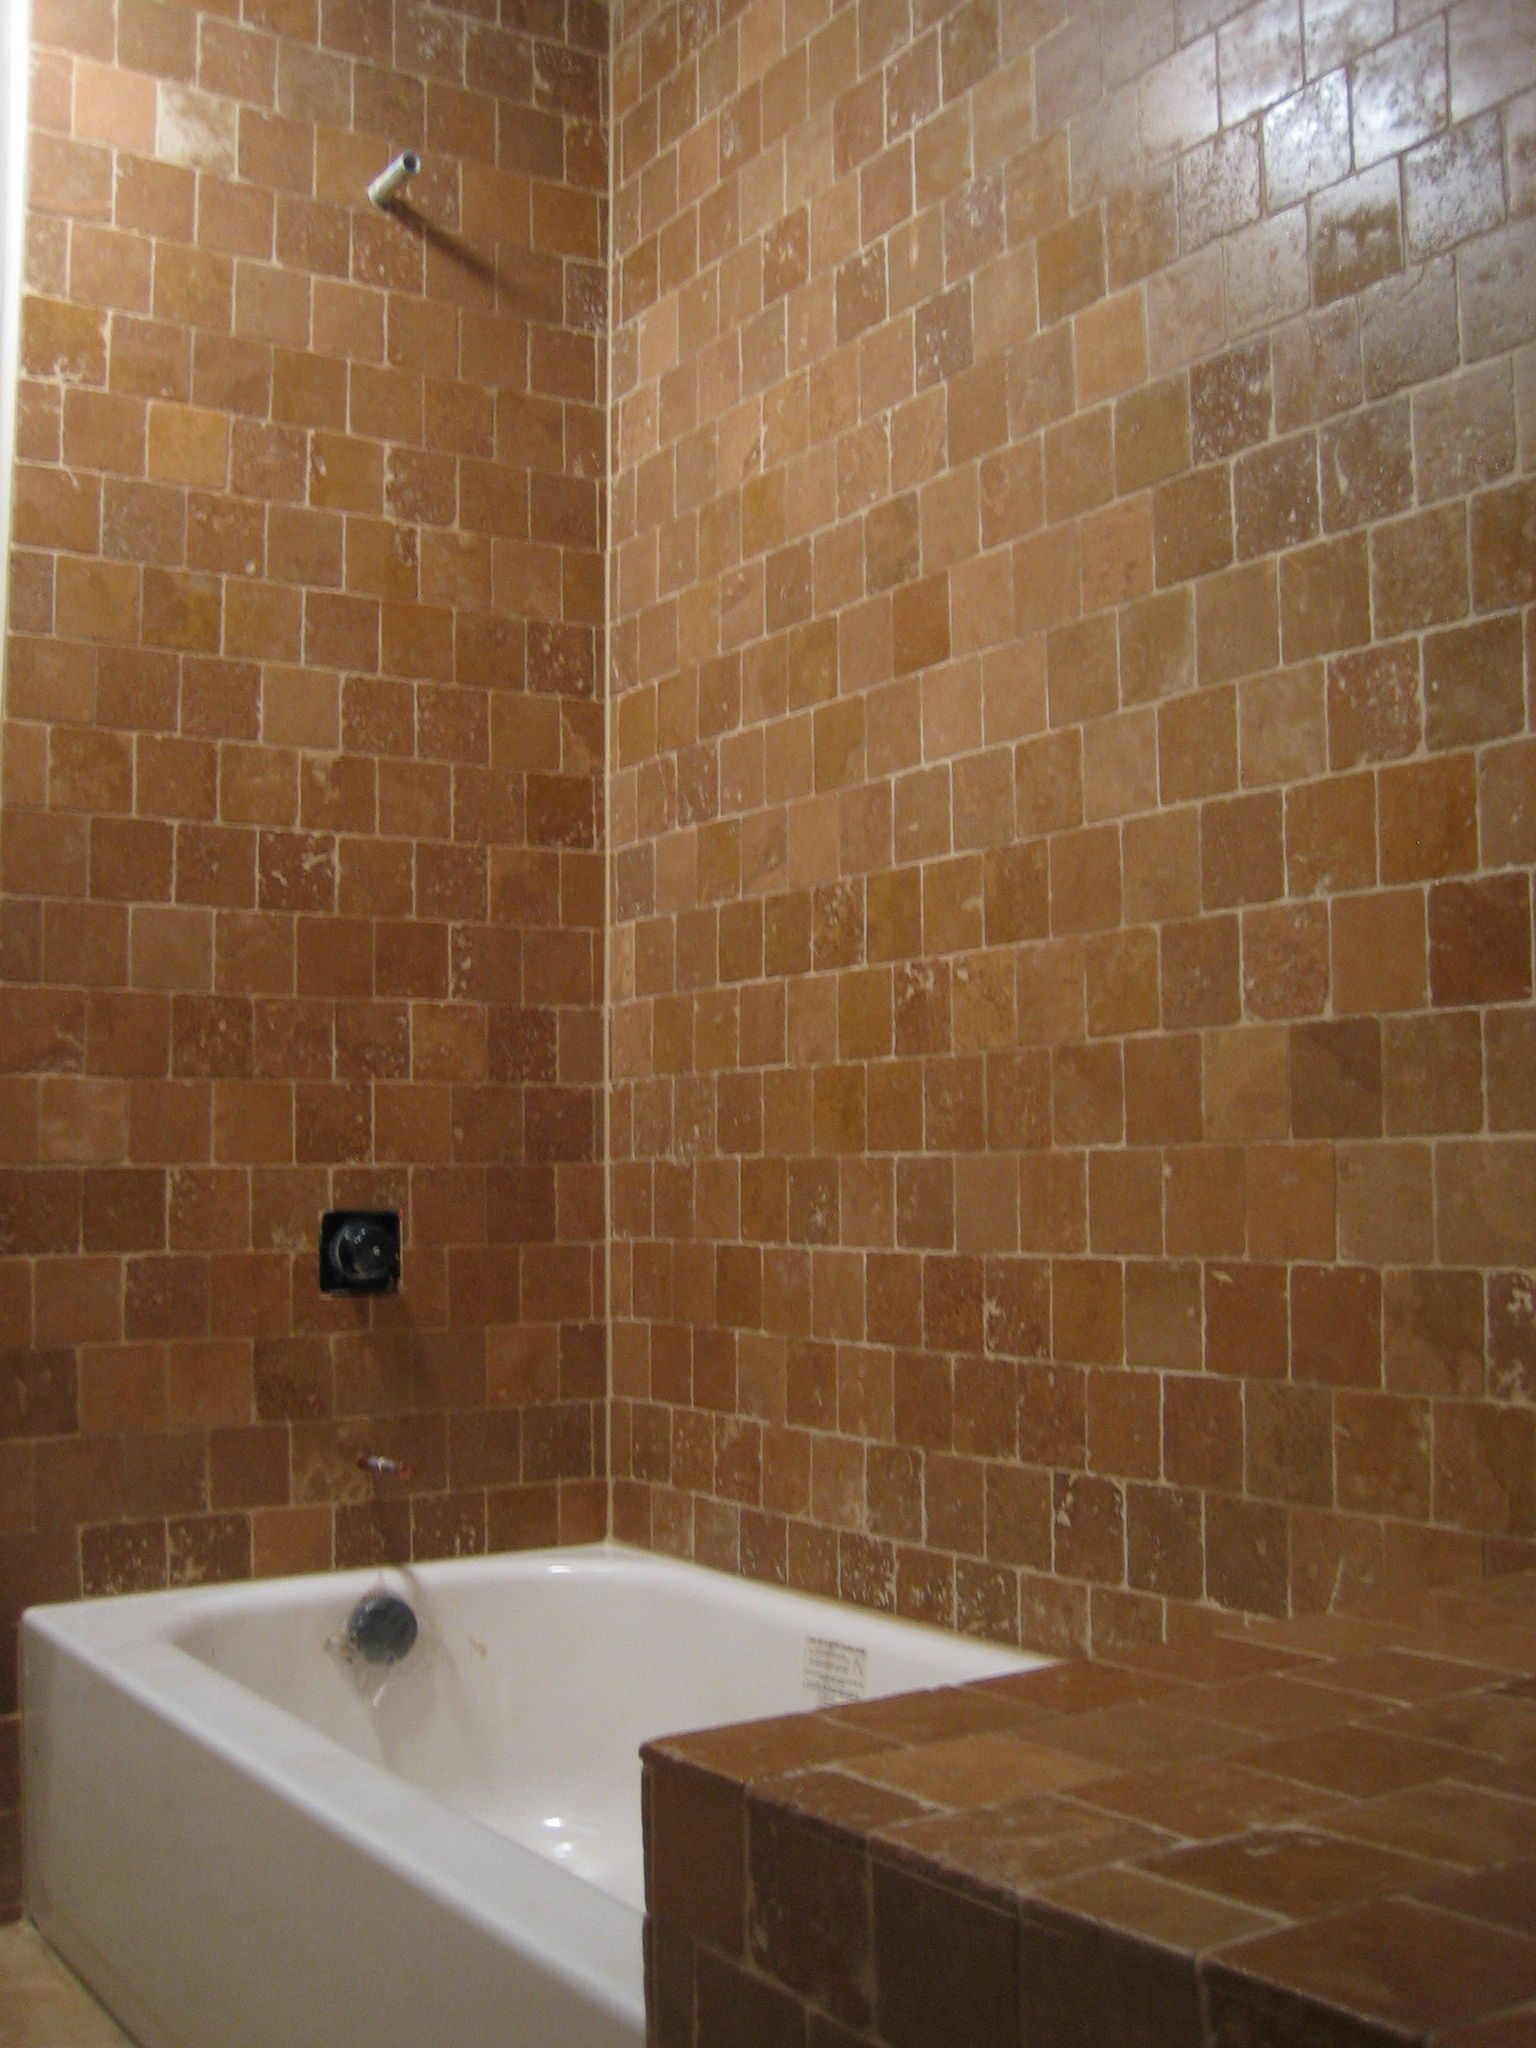 Tiled tub surround pictures bathtub surrounds ma bathtub for Tile shower surround